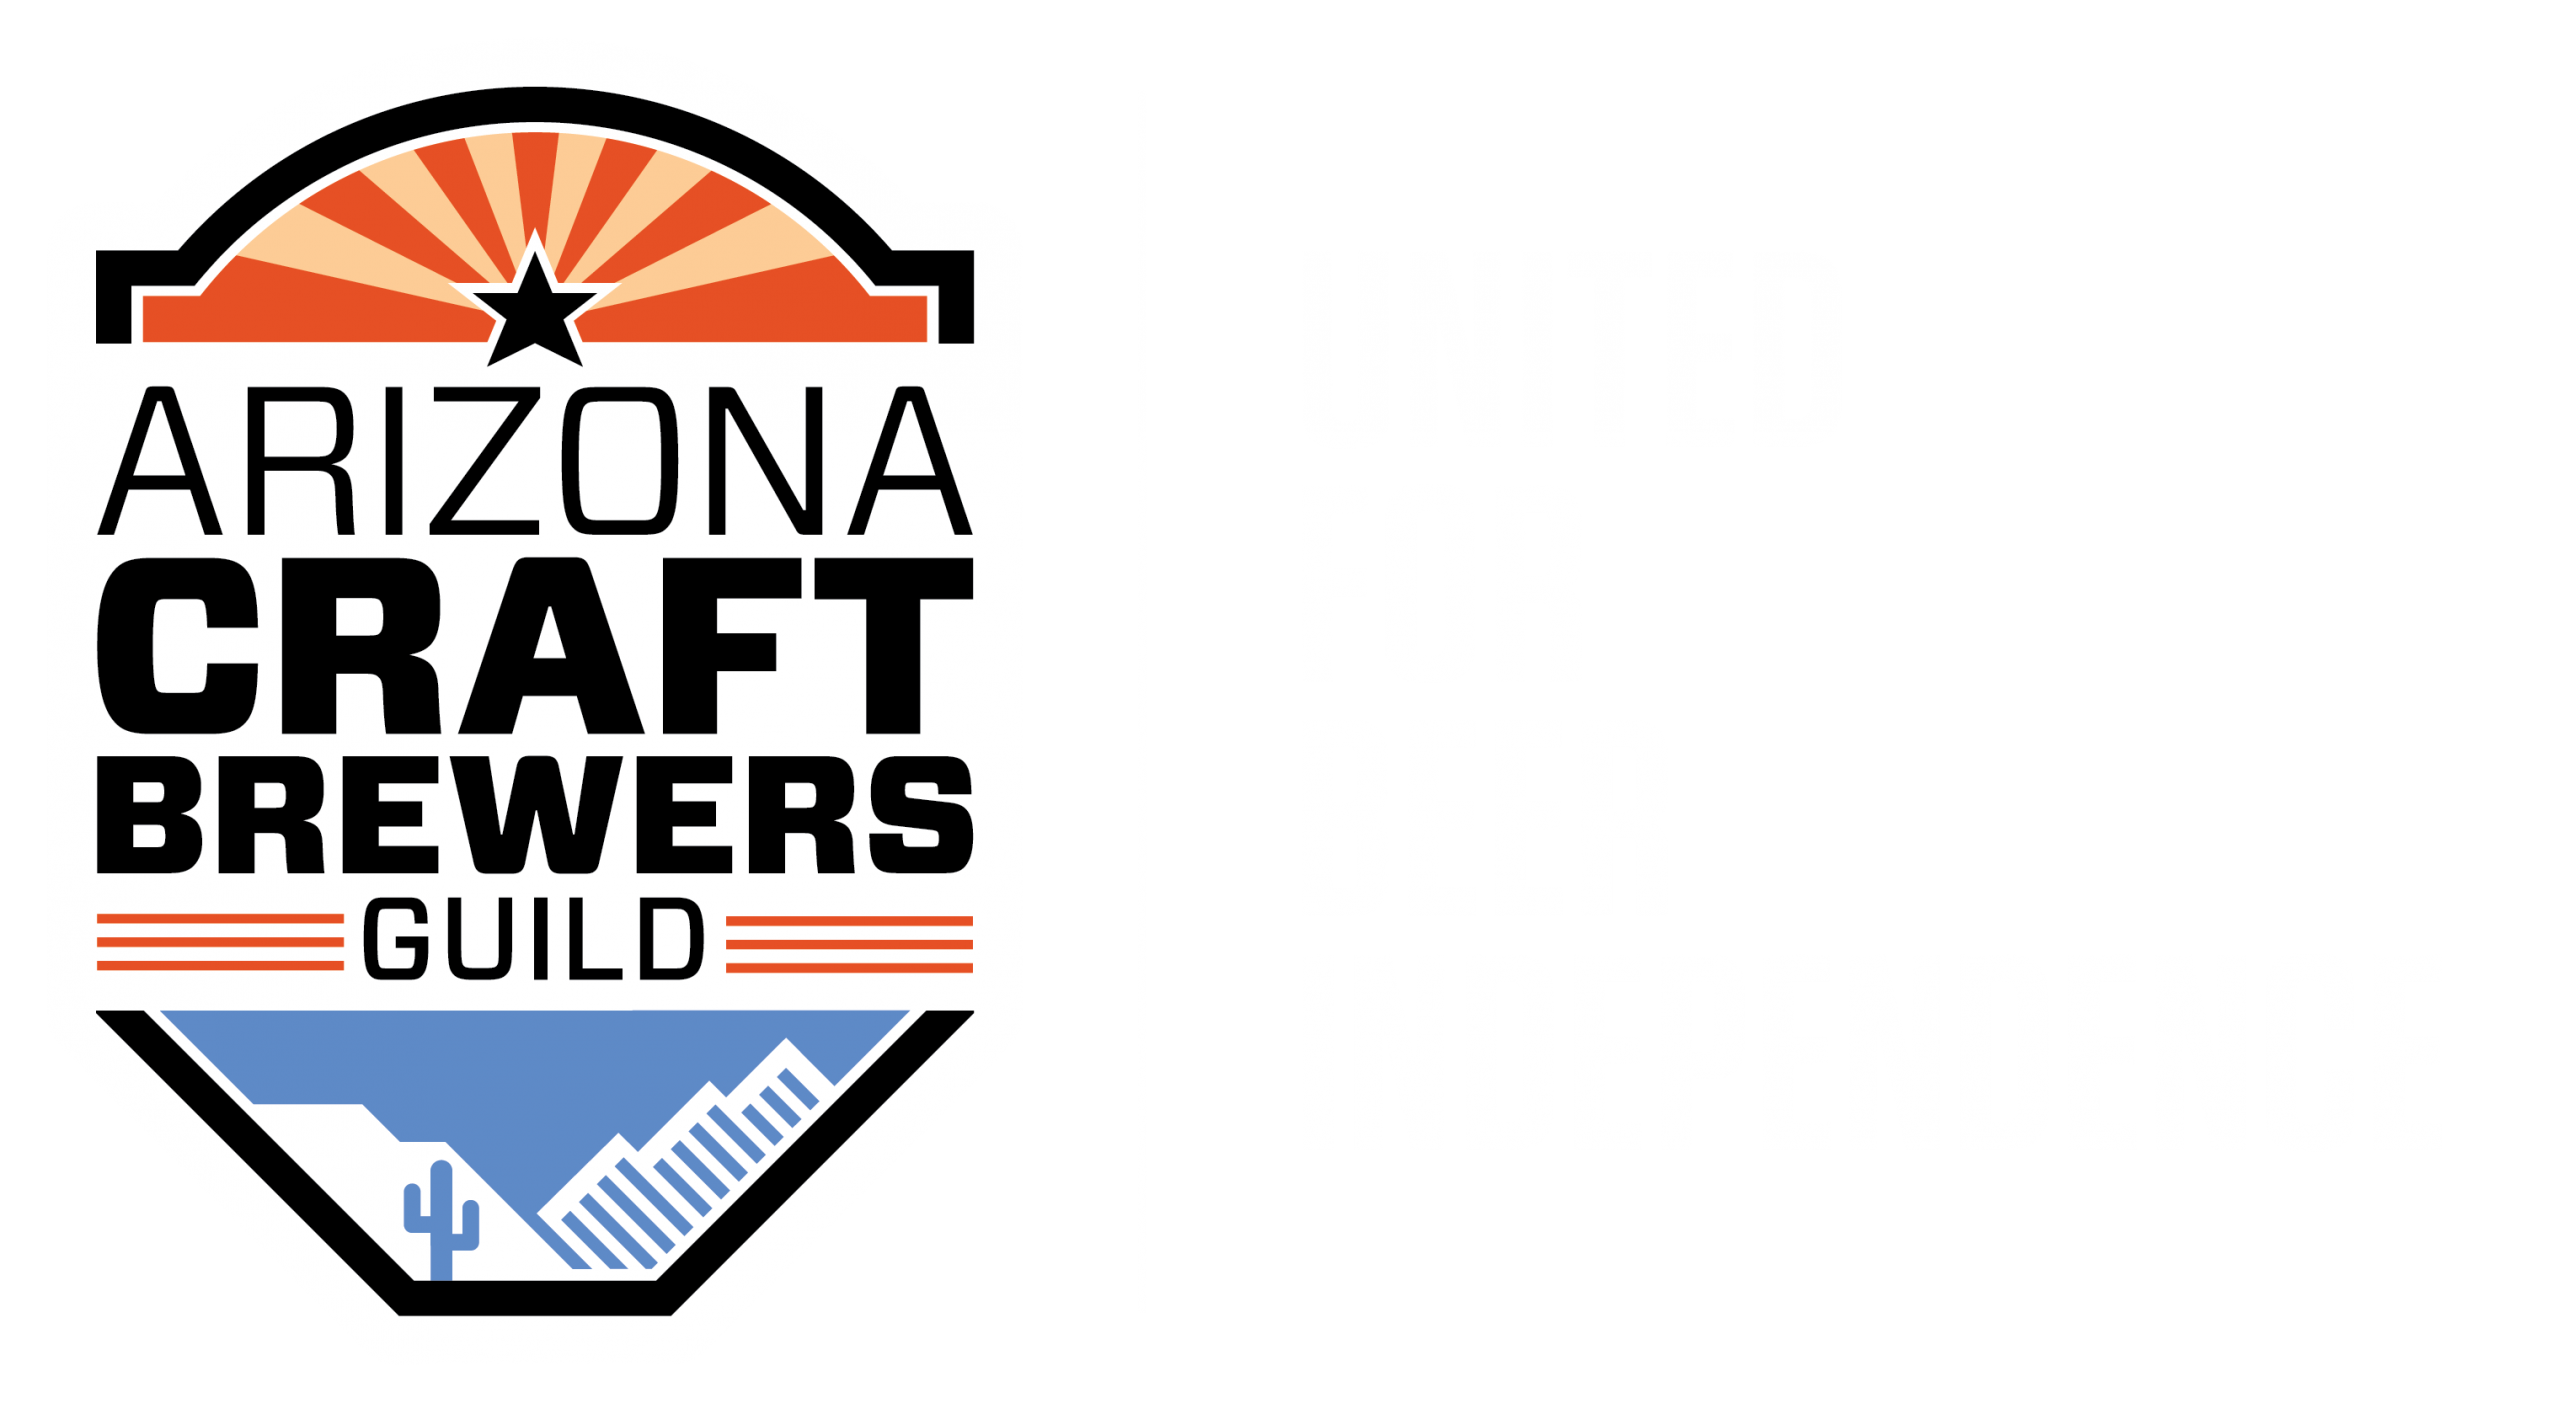 NFP Property & Casualty Services, Inc. | Arizona Craft Brewers Guild